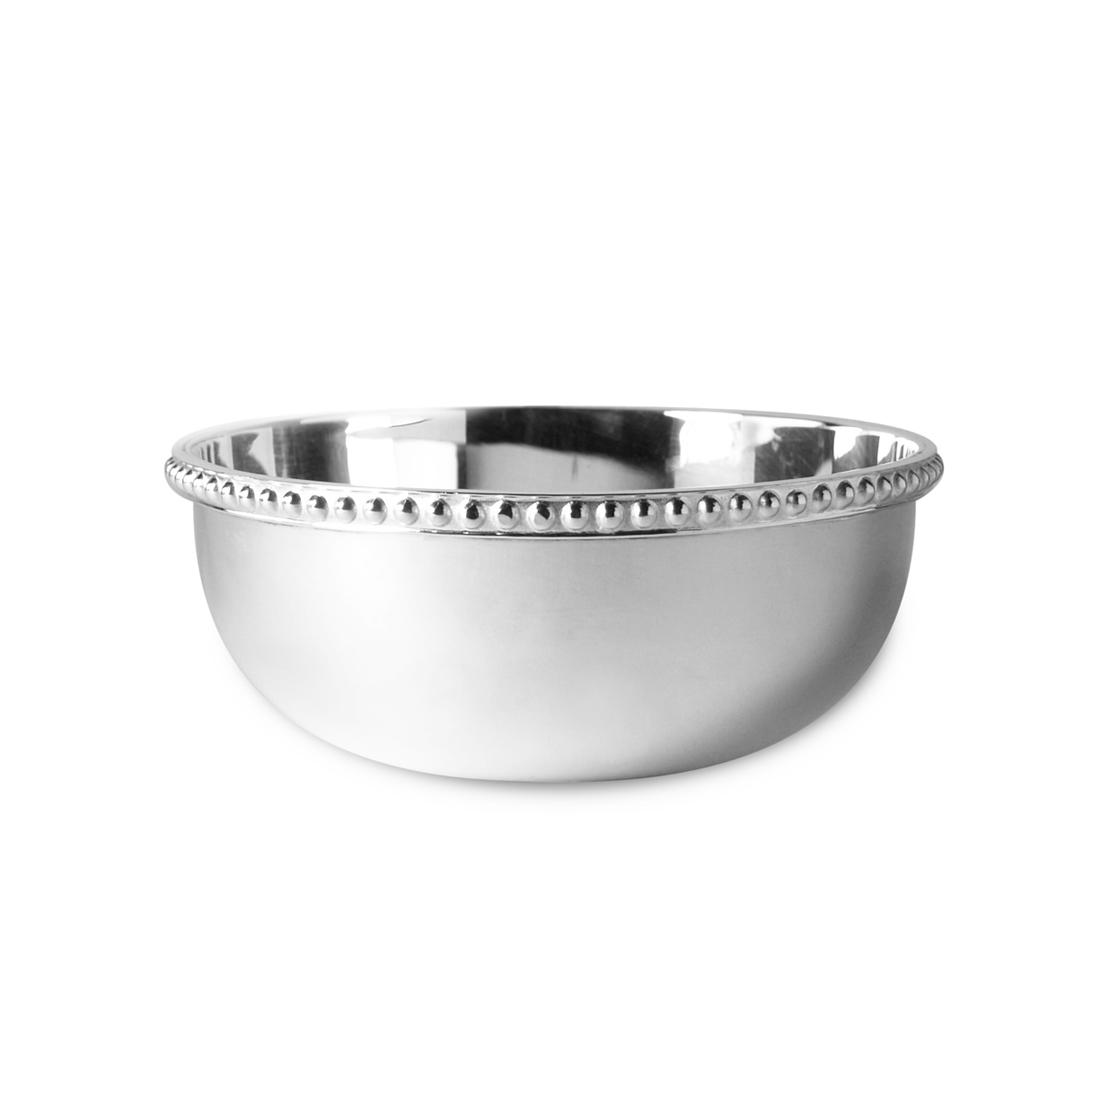 "4"" Silver Plated Finger Bowl in Pearl"